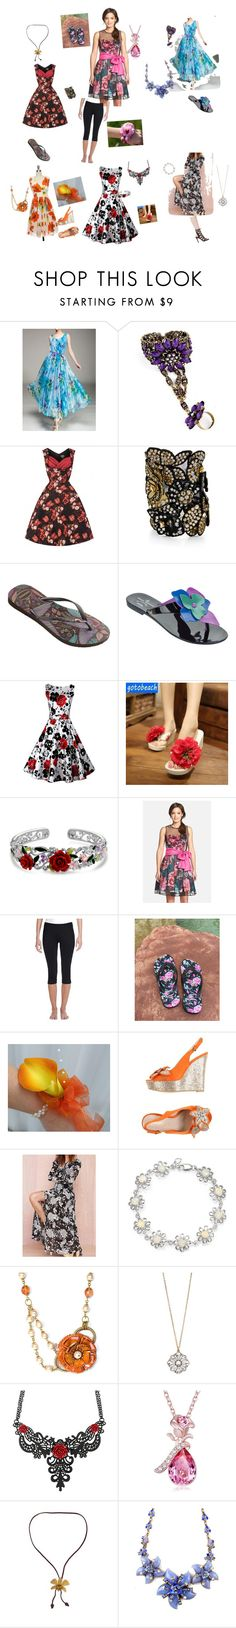 """""""Romantic Flower Collection"""" by mahayla-huff ❤ liked on Polyvore featuring Havaianas, Vivienne Westwood Anglomania + Melissa, Sunset Hours, Bling Jewelry, Eliza J, Clementine, PrimaDonna, Aéropostale, NOVICA and women's clothing"""